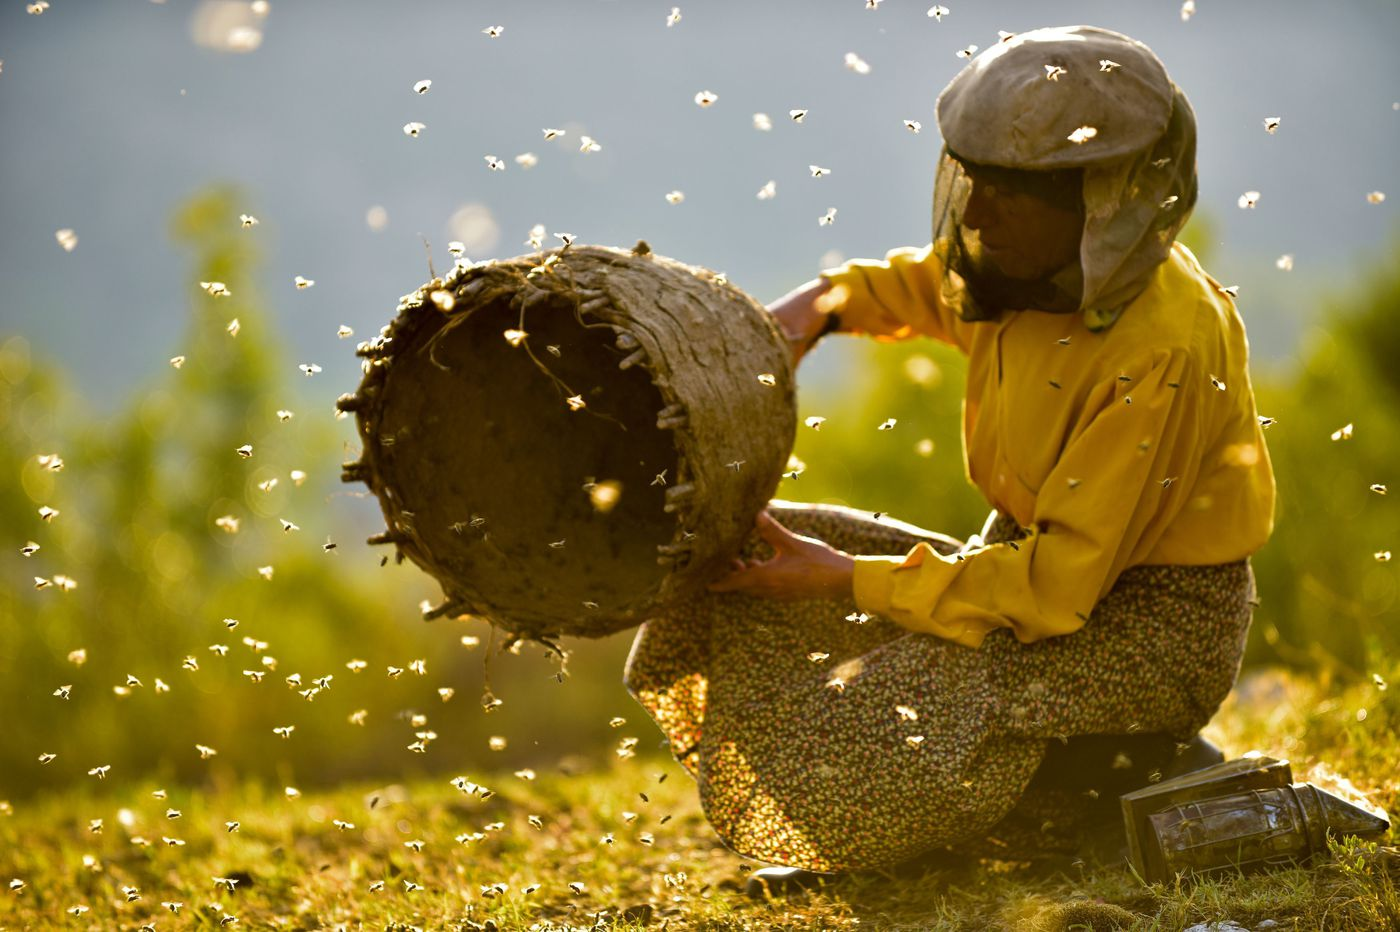 How a movie connected me (and my suburban Philly garden) to a Macedonian beekeeper from halfway 'round the world